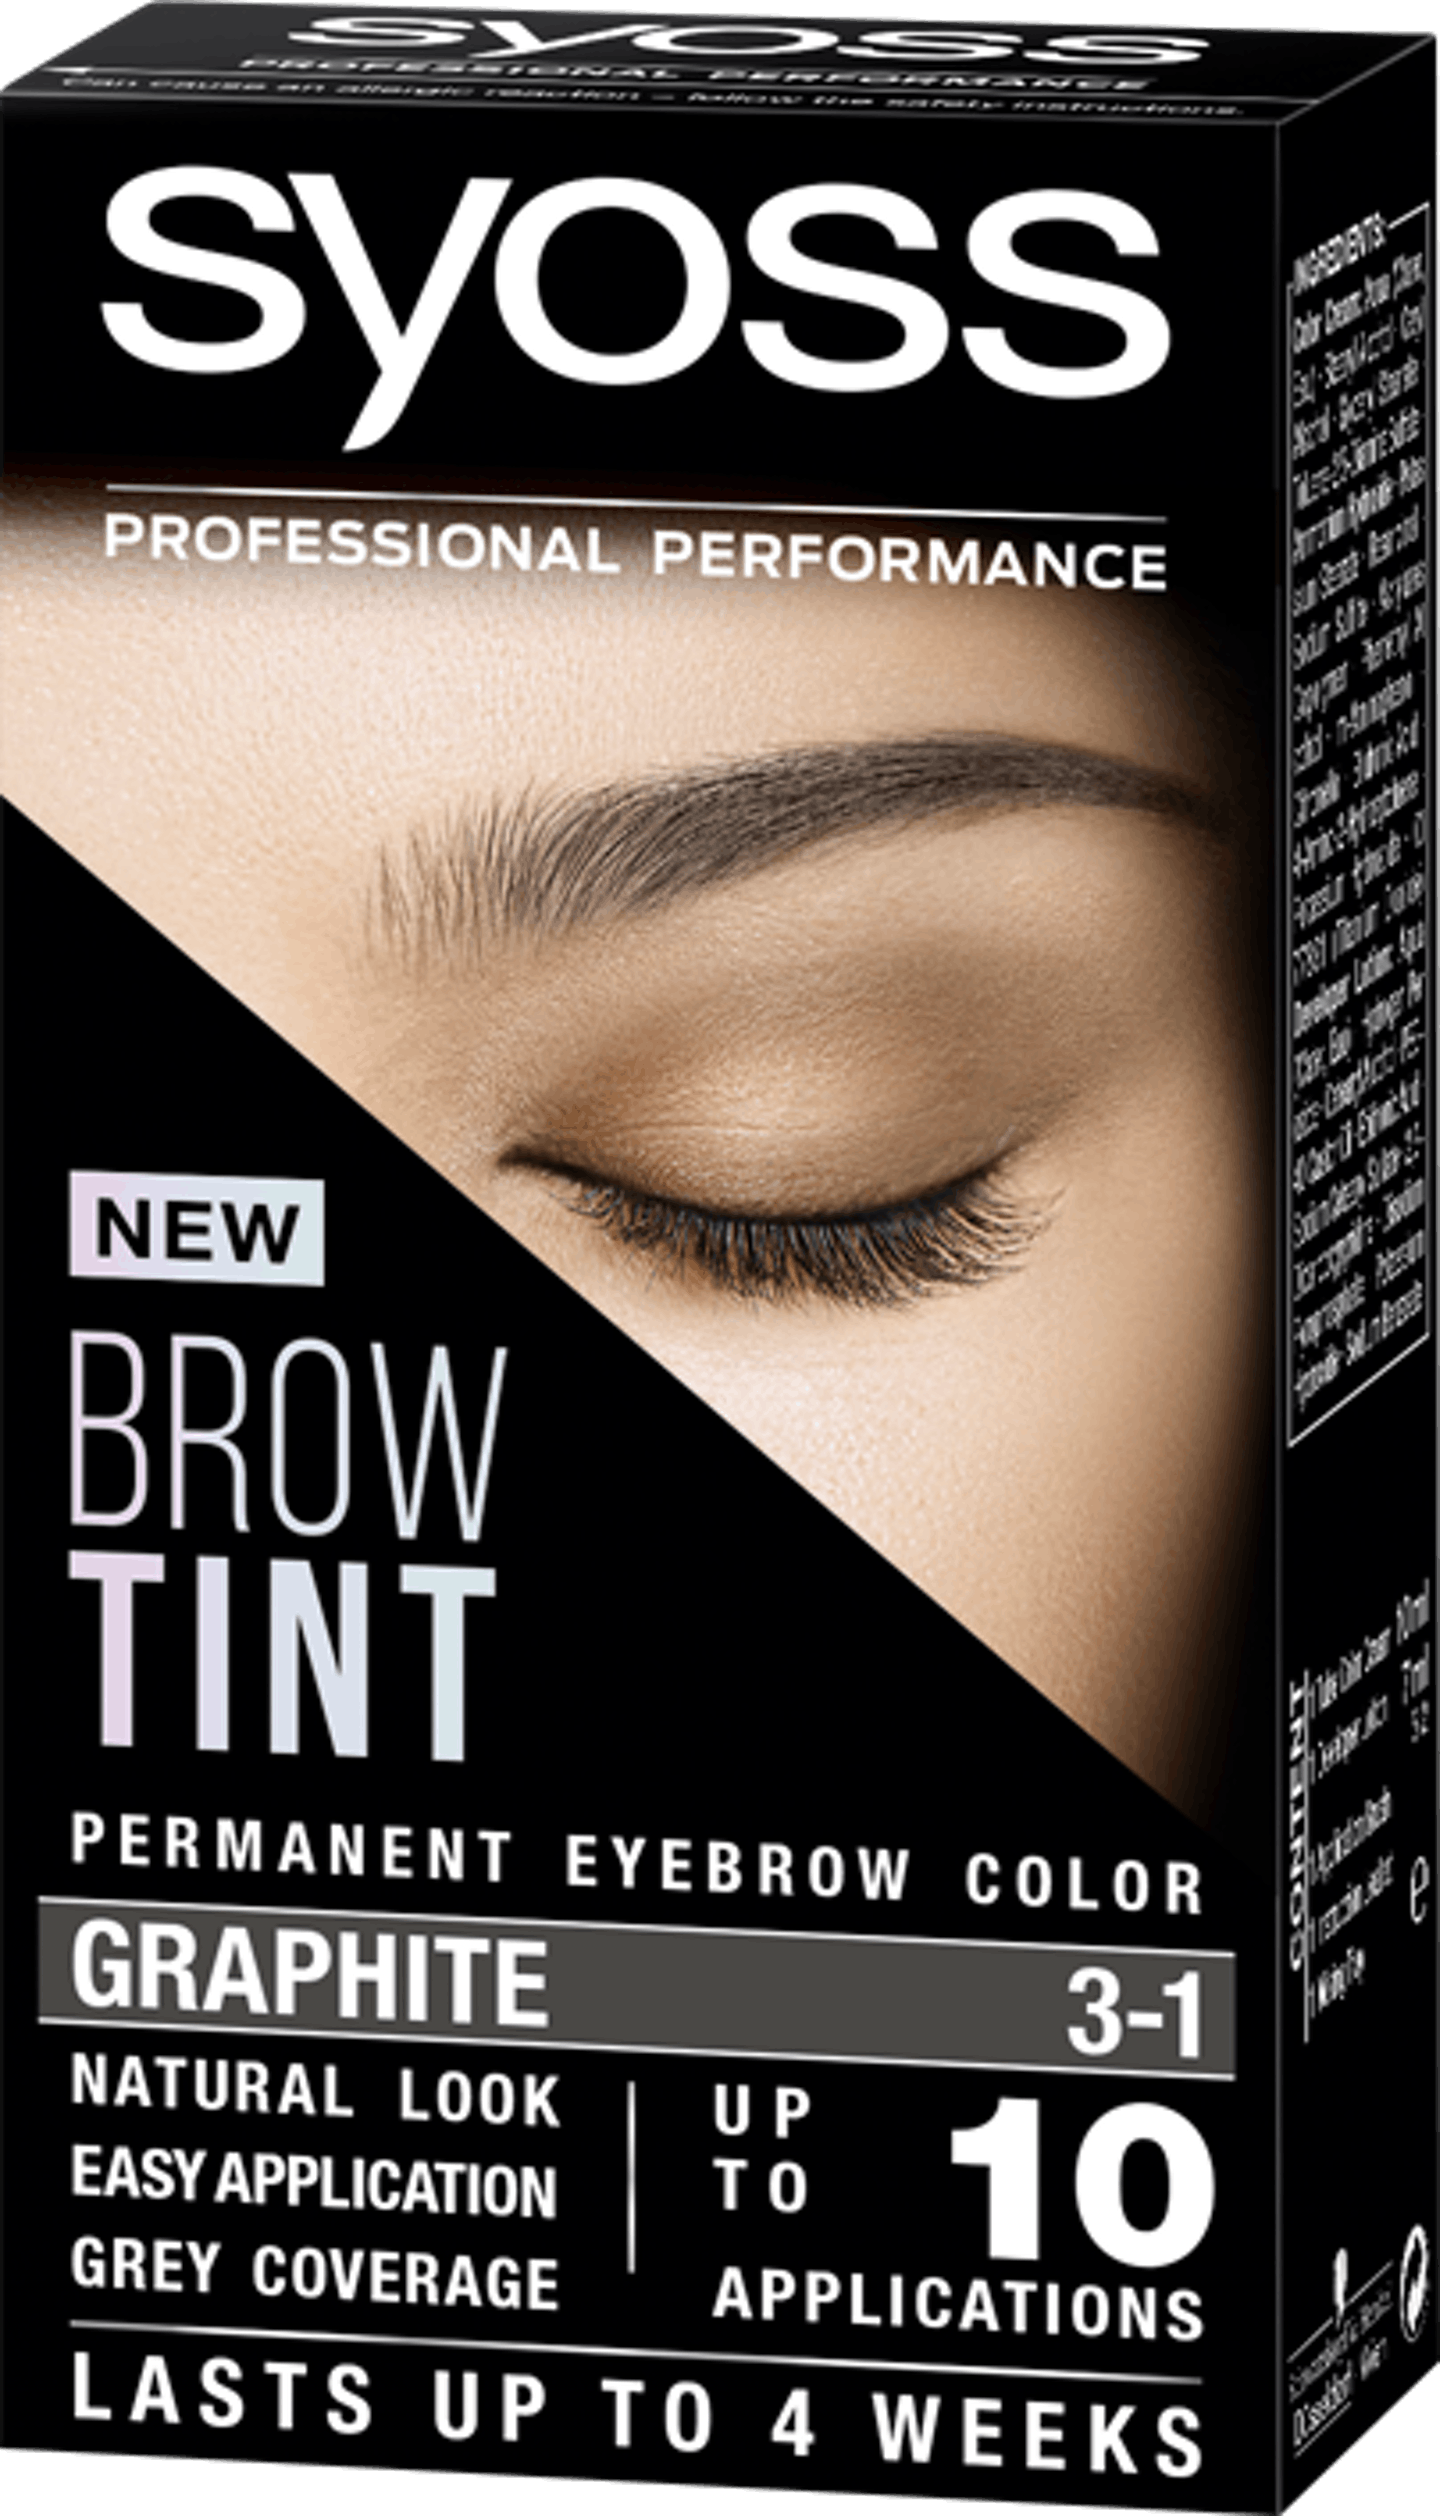 Syoss Brow Tint 3-1 Graphite